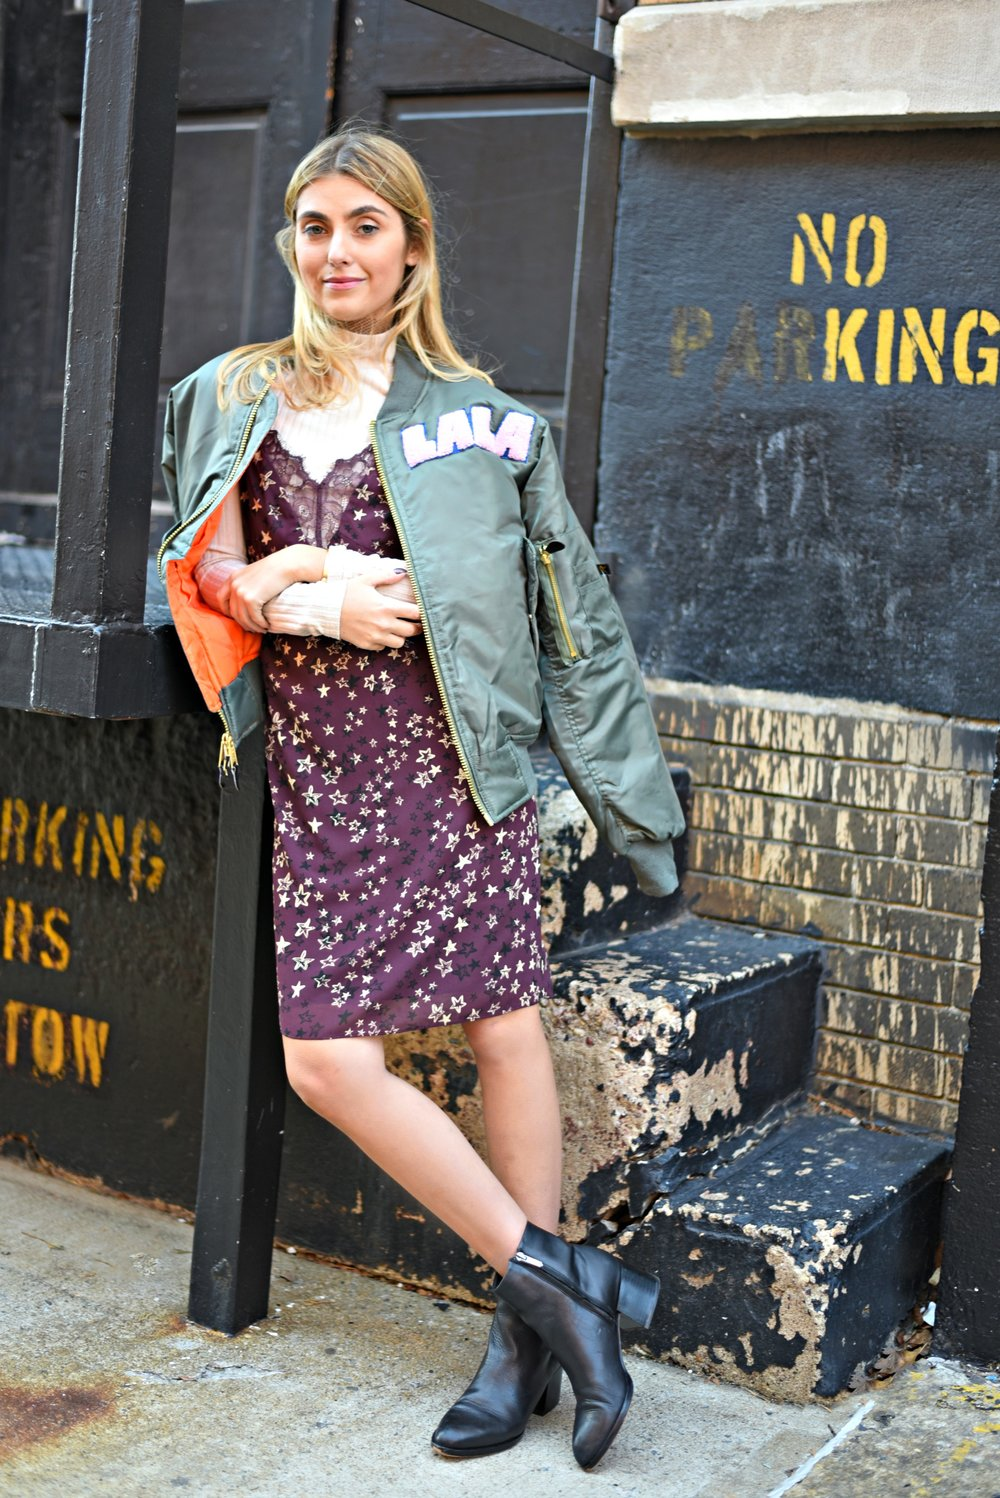 CHARLOTTE BICKLEY YIN 2MY YANG SISTER FASHION BLOGGERS NYC UNEMPLOYED DENIM PERSONALIZED BOMBER JACKET POST 8.jpg